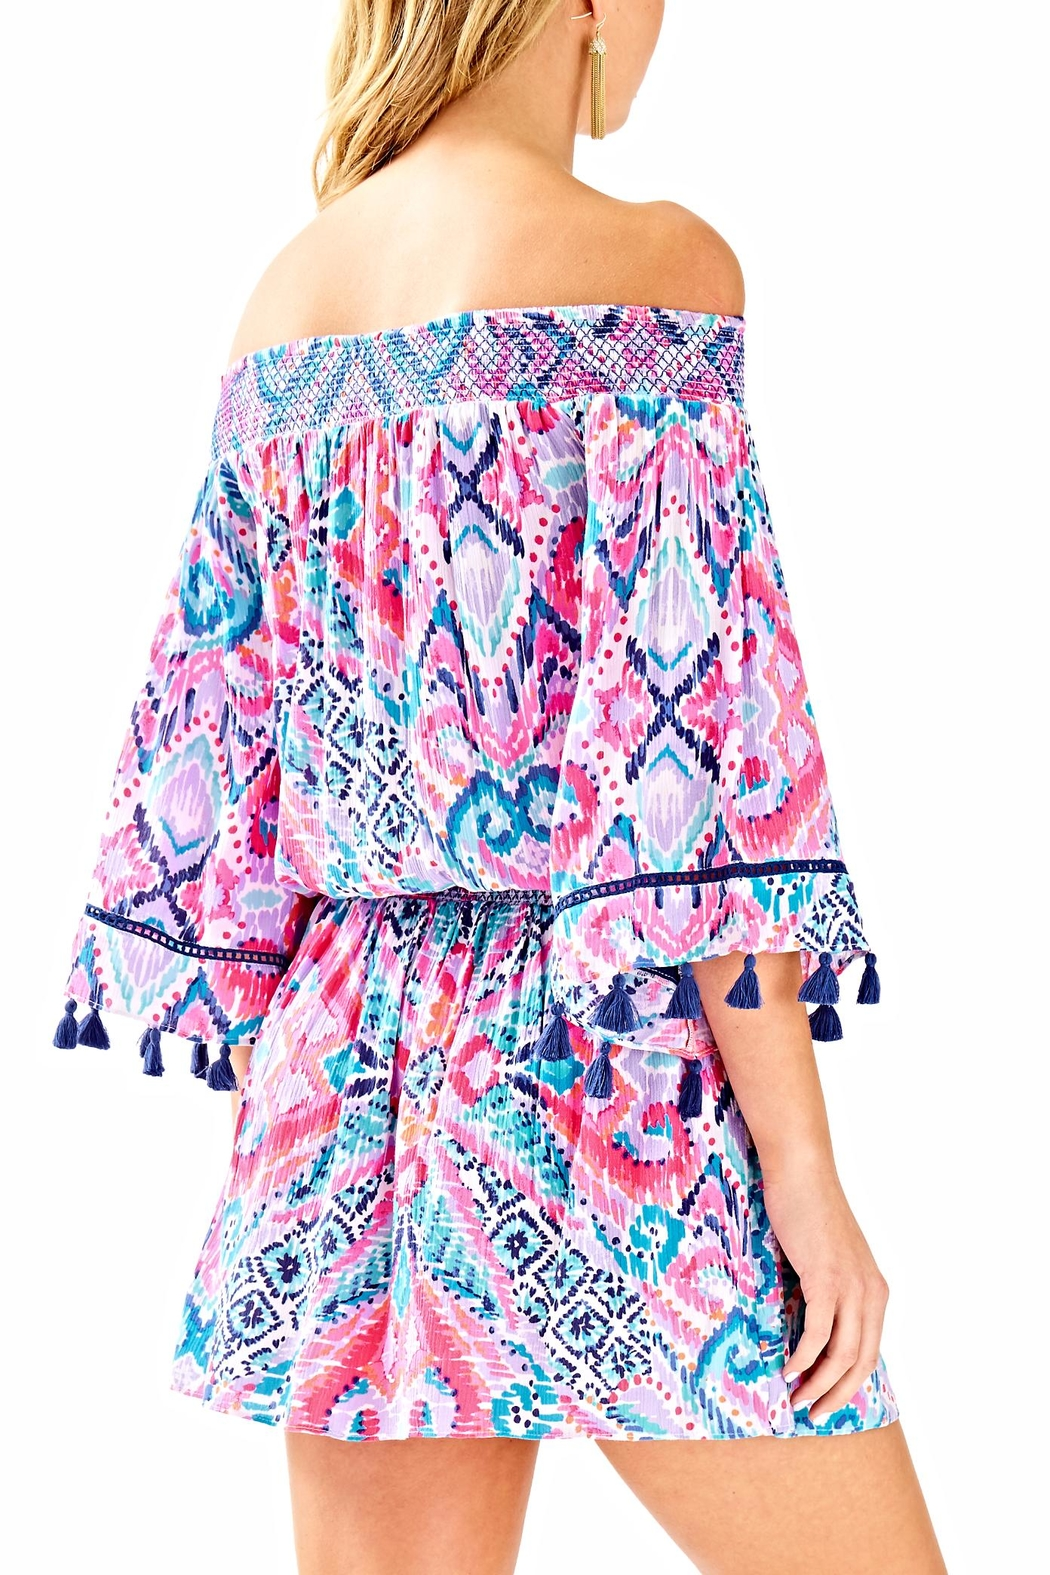 0968d7e54ebe2b Lilly Pulitzer Joelle Dress from Sandestin Golf and Beach Resort by ...